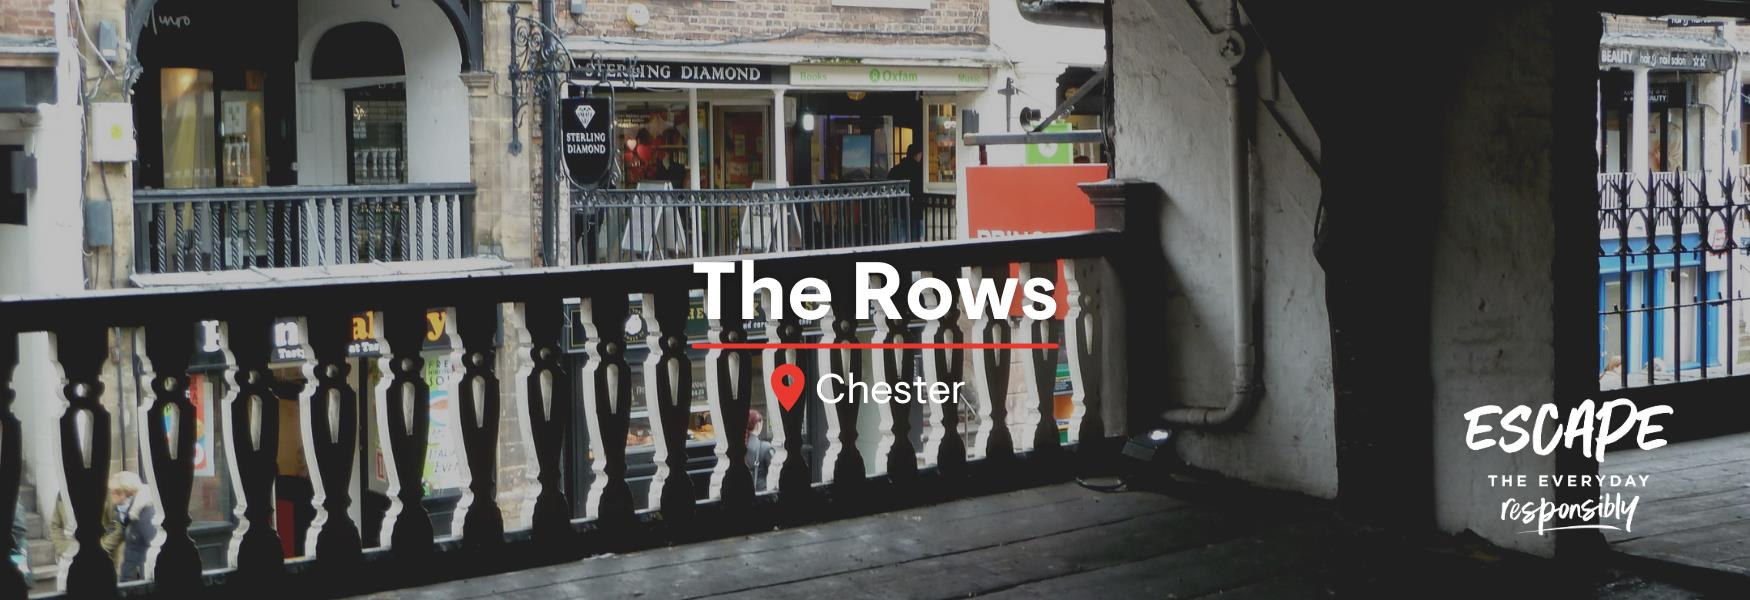 The Rows